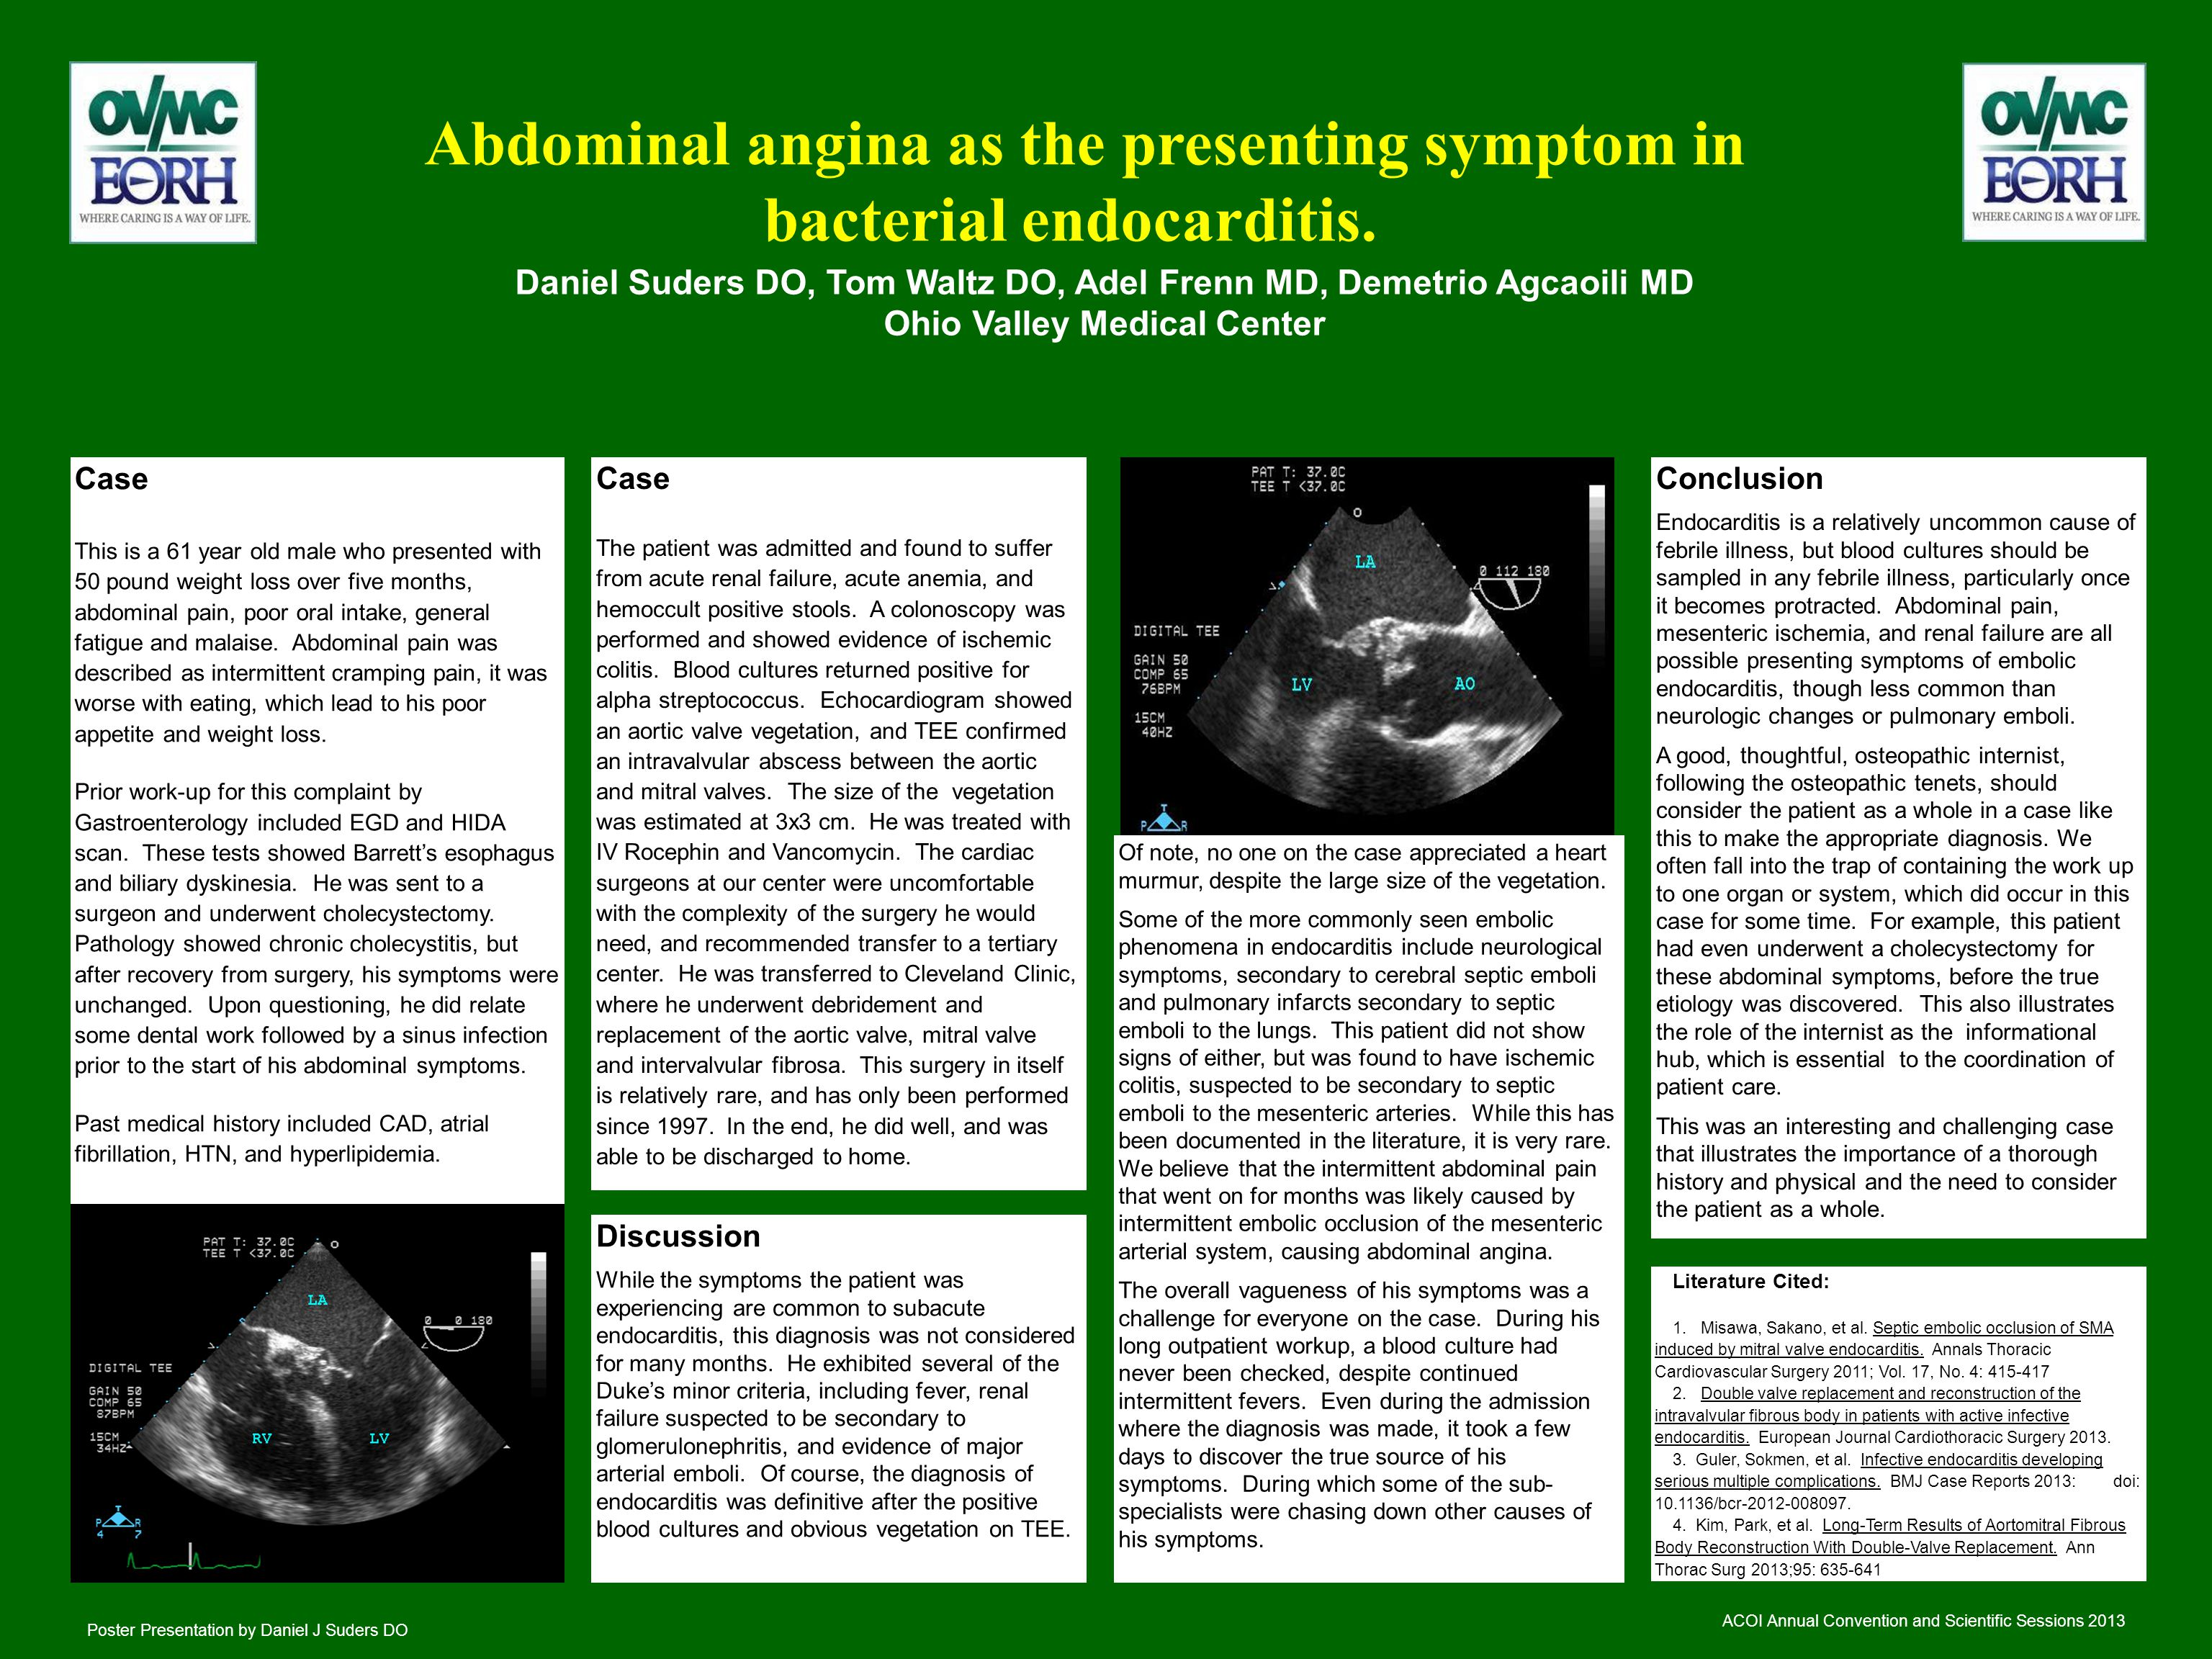 Abdominal angina as the presenting symptom in bacterial endocarditis.